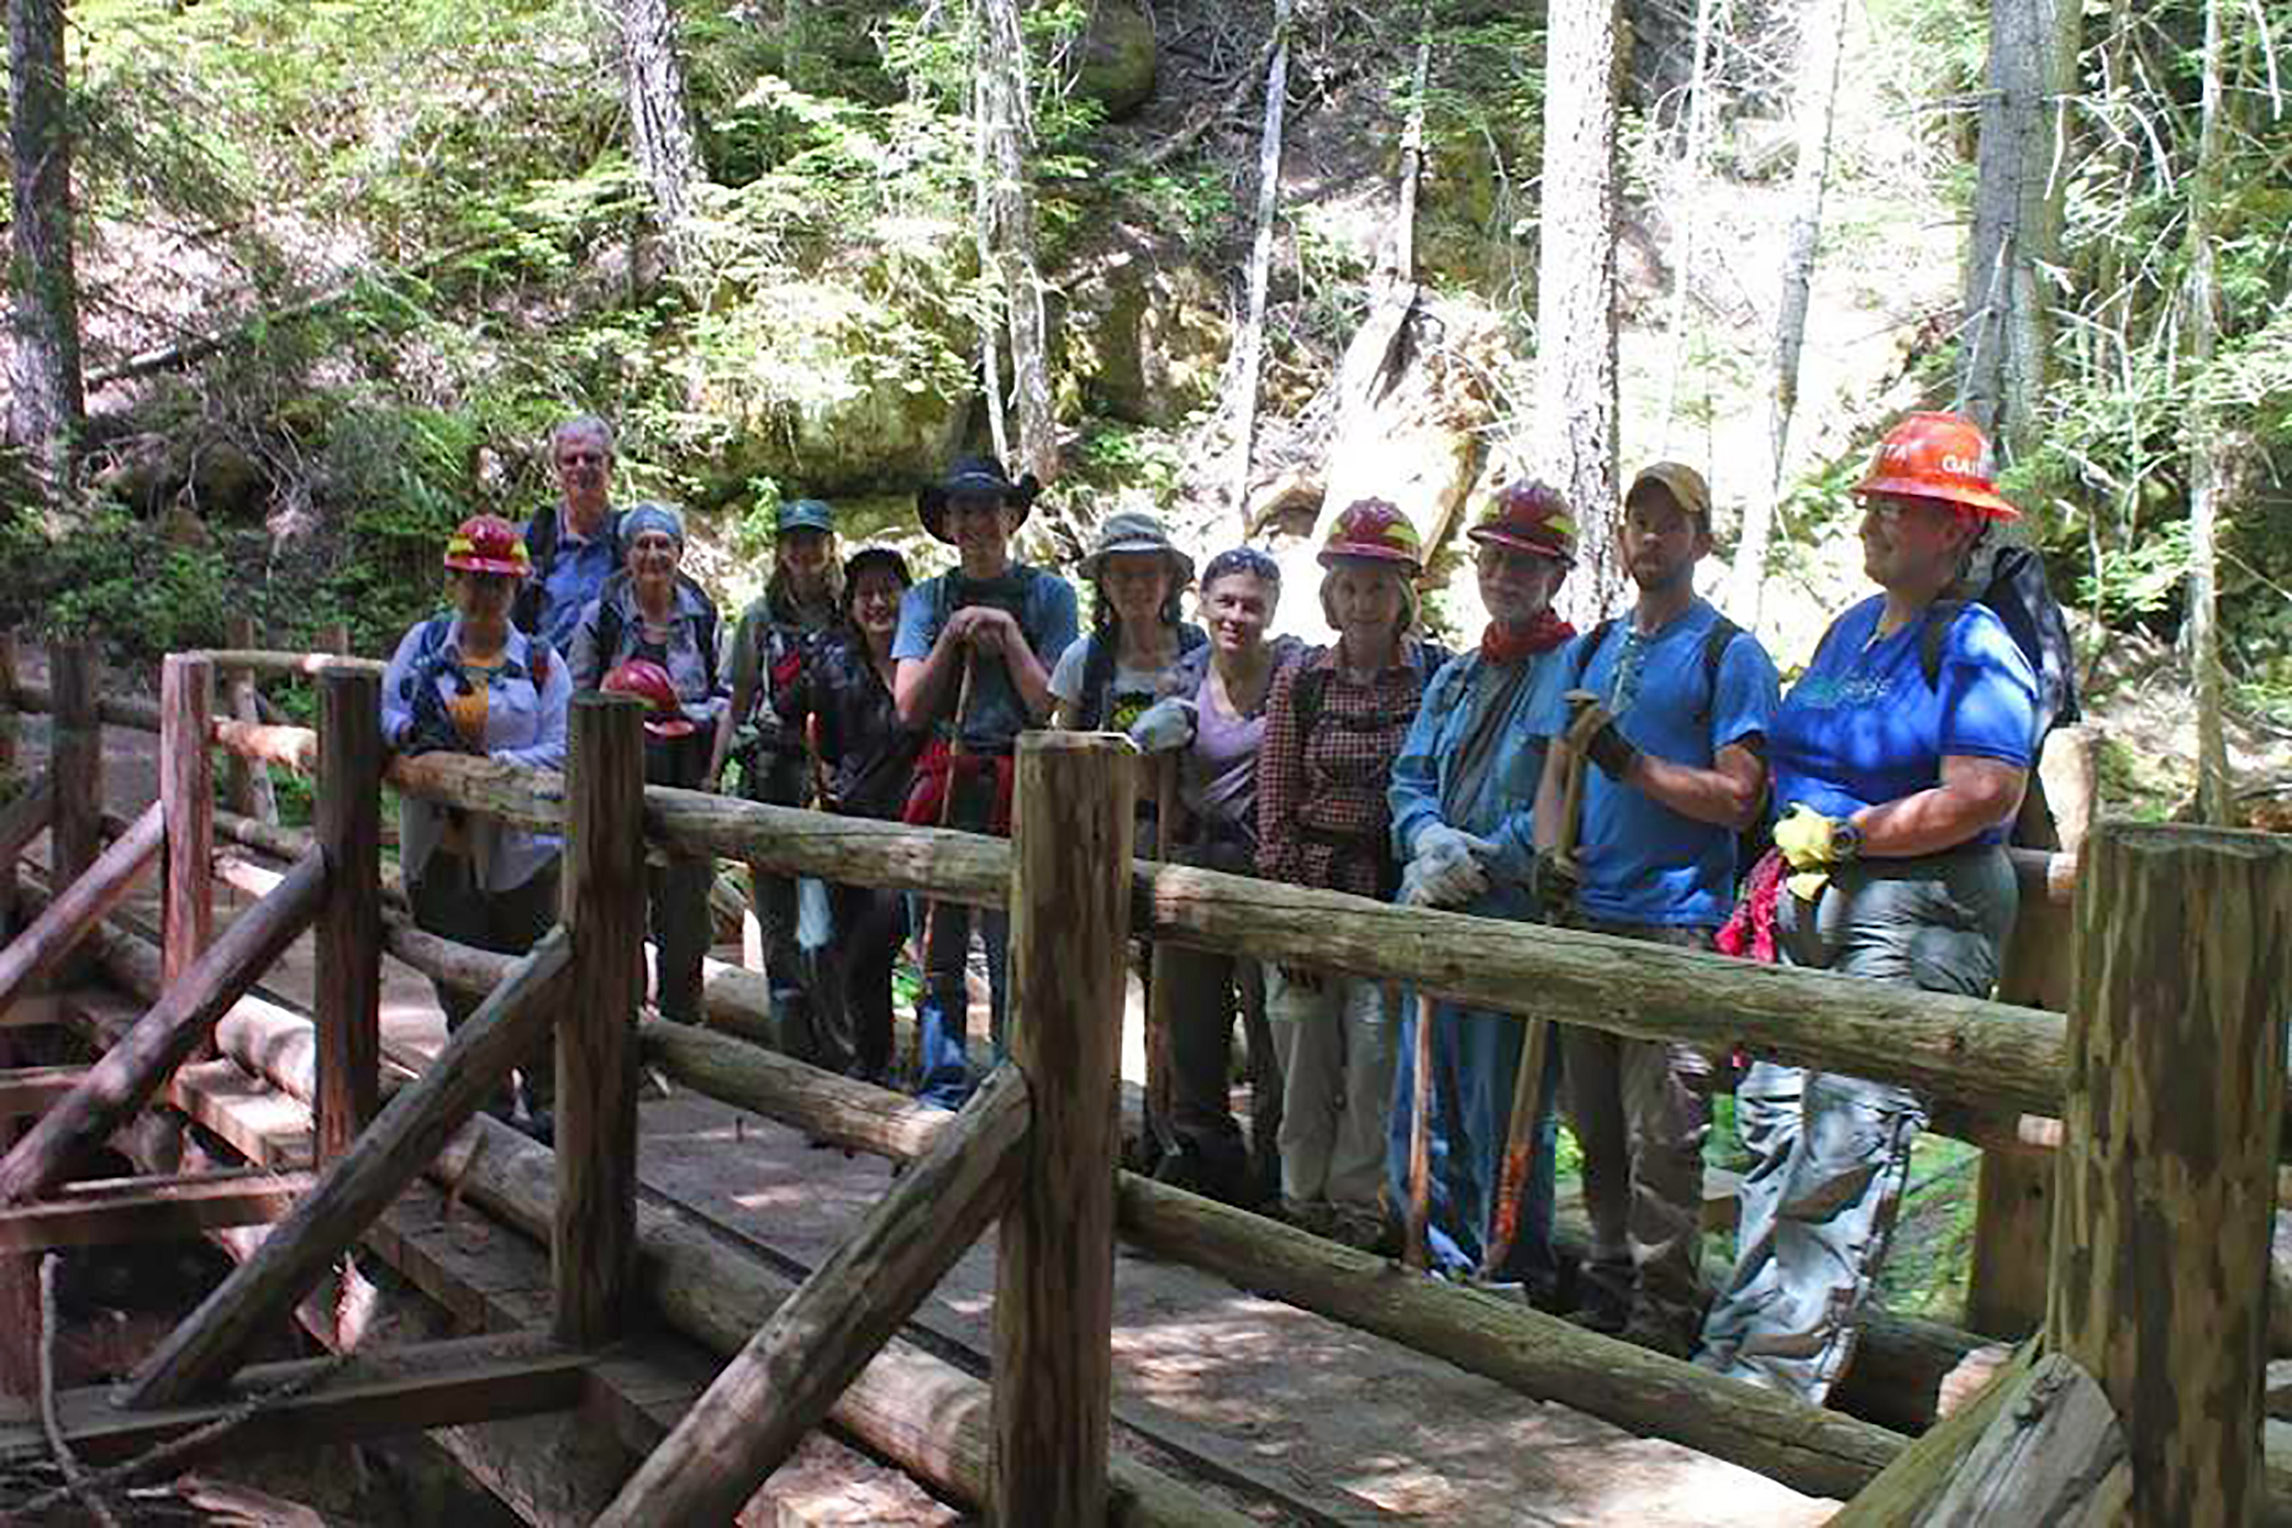 Wilderness Steward Volunteers